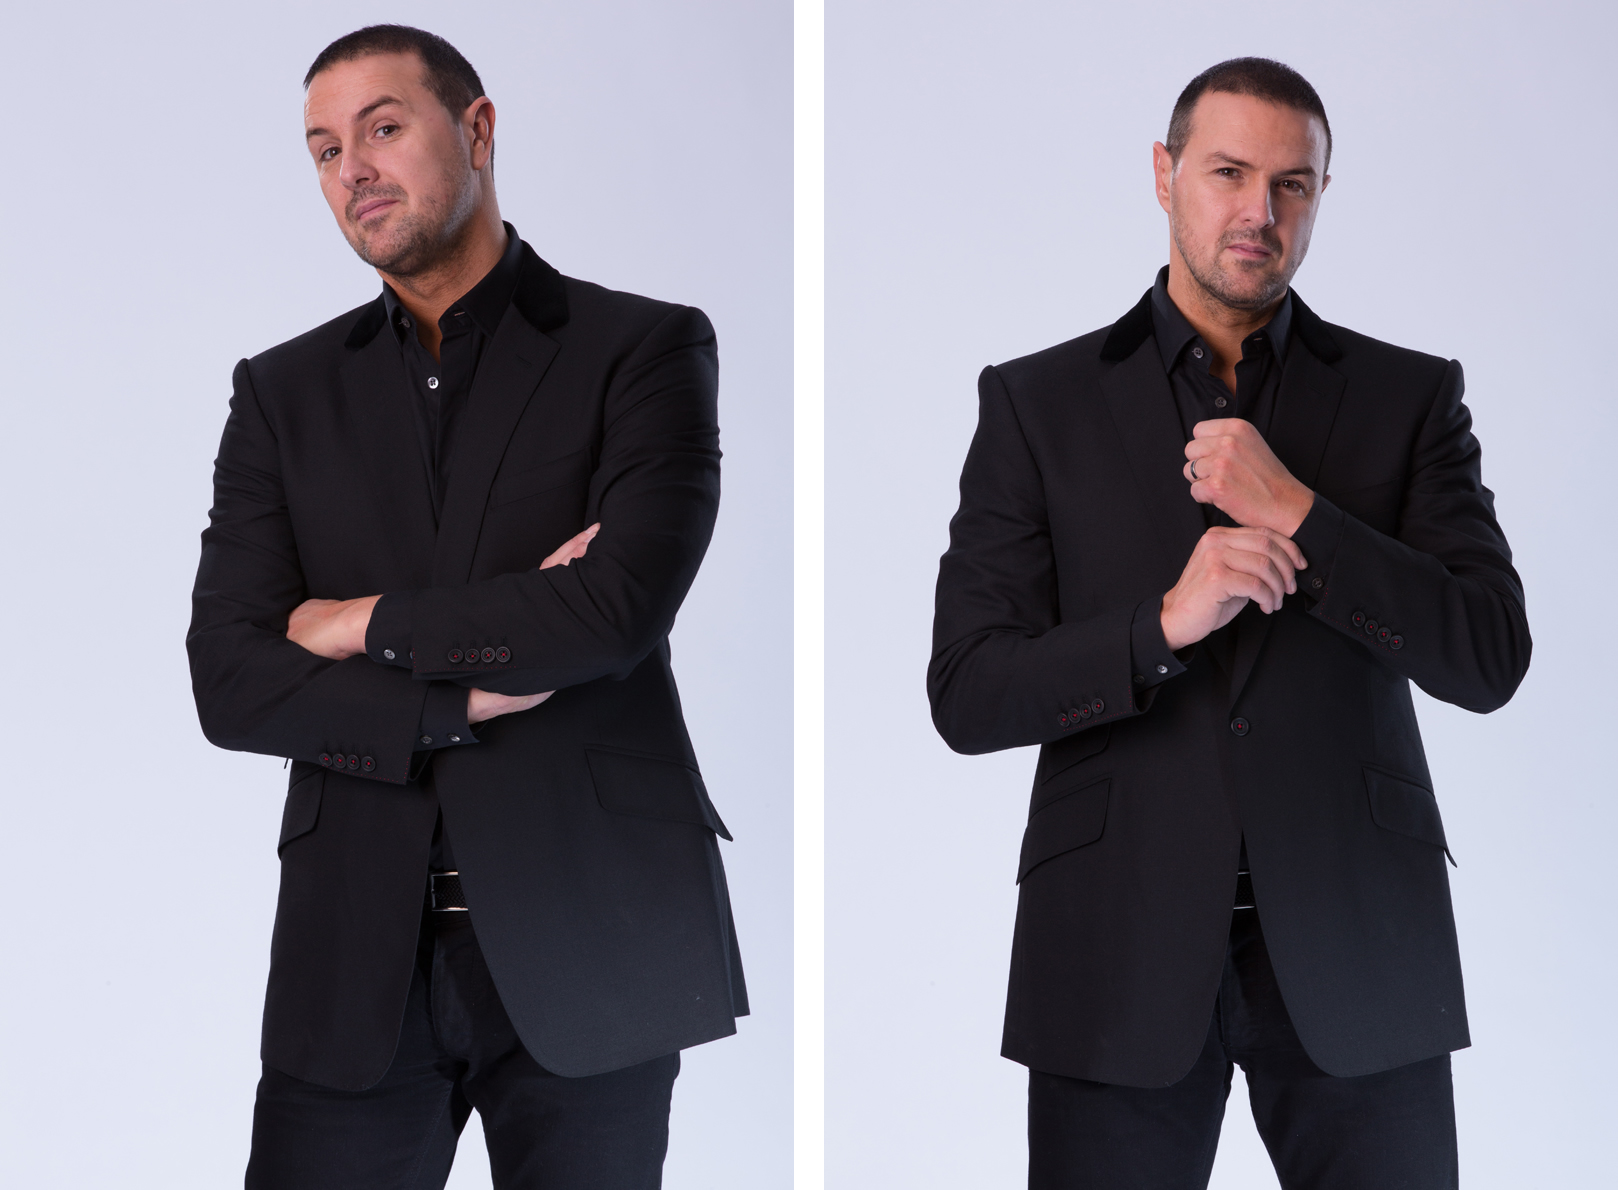 Paddy McGuinness presents Daddy McGuiness the UK Tour